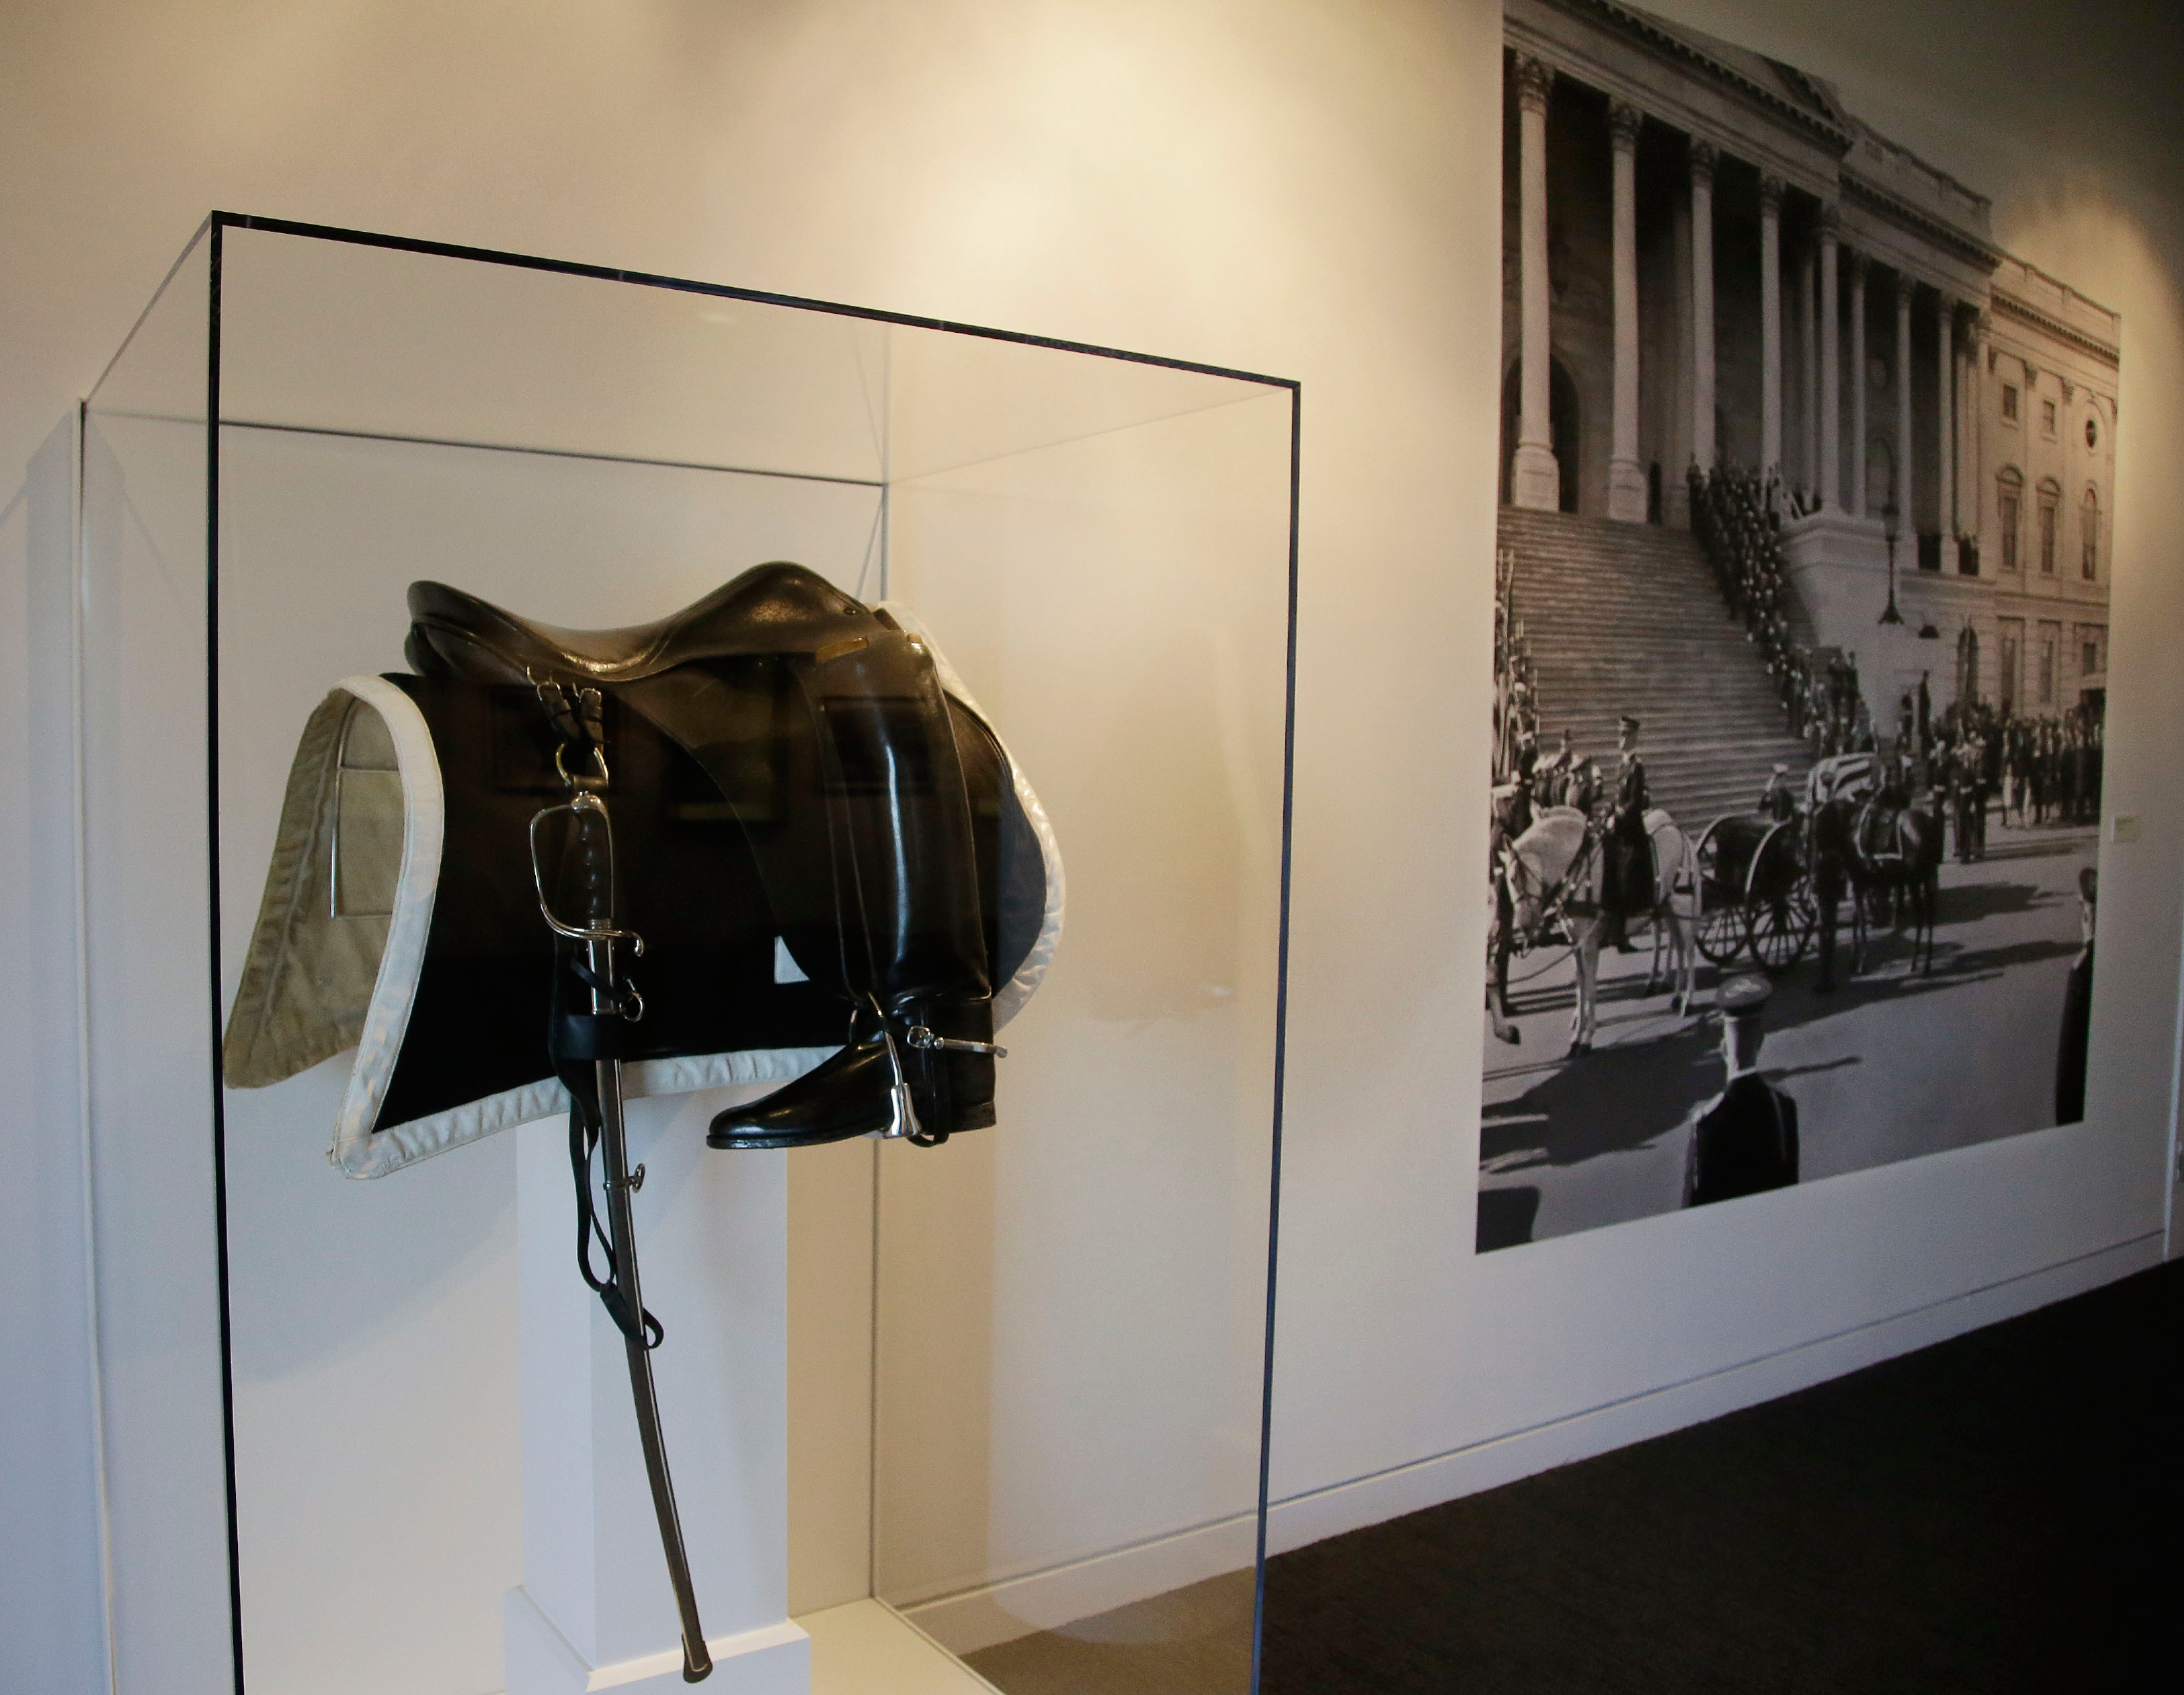 A small new exhibit at the John F. Kennedy Library and Museum marking the 50th anniversary of the assignation of the 35th President of the United States includes never-before-displayed artifacts from his three-day state funeral, such as the saddle, boots and sword which sat atop the riderless horse in Kennedy